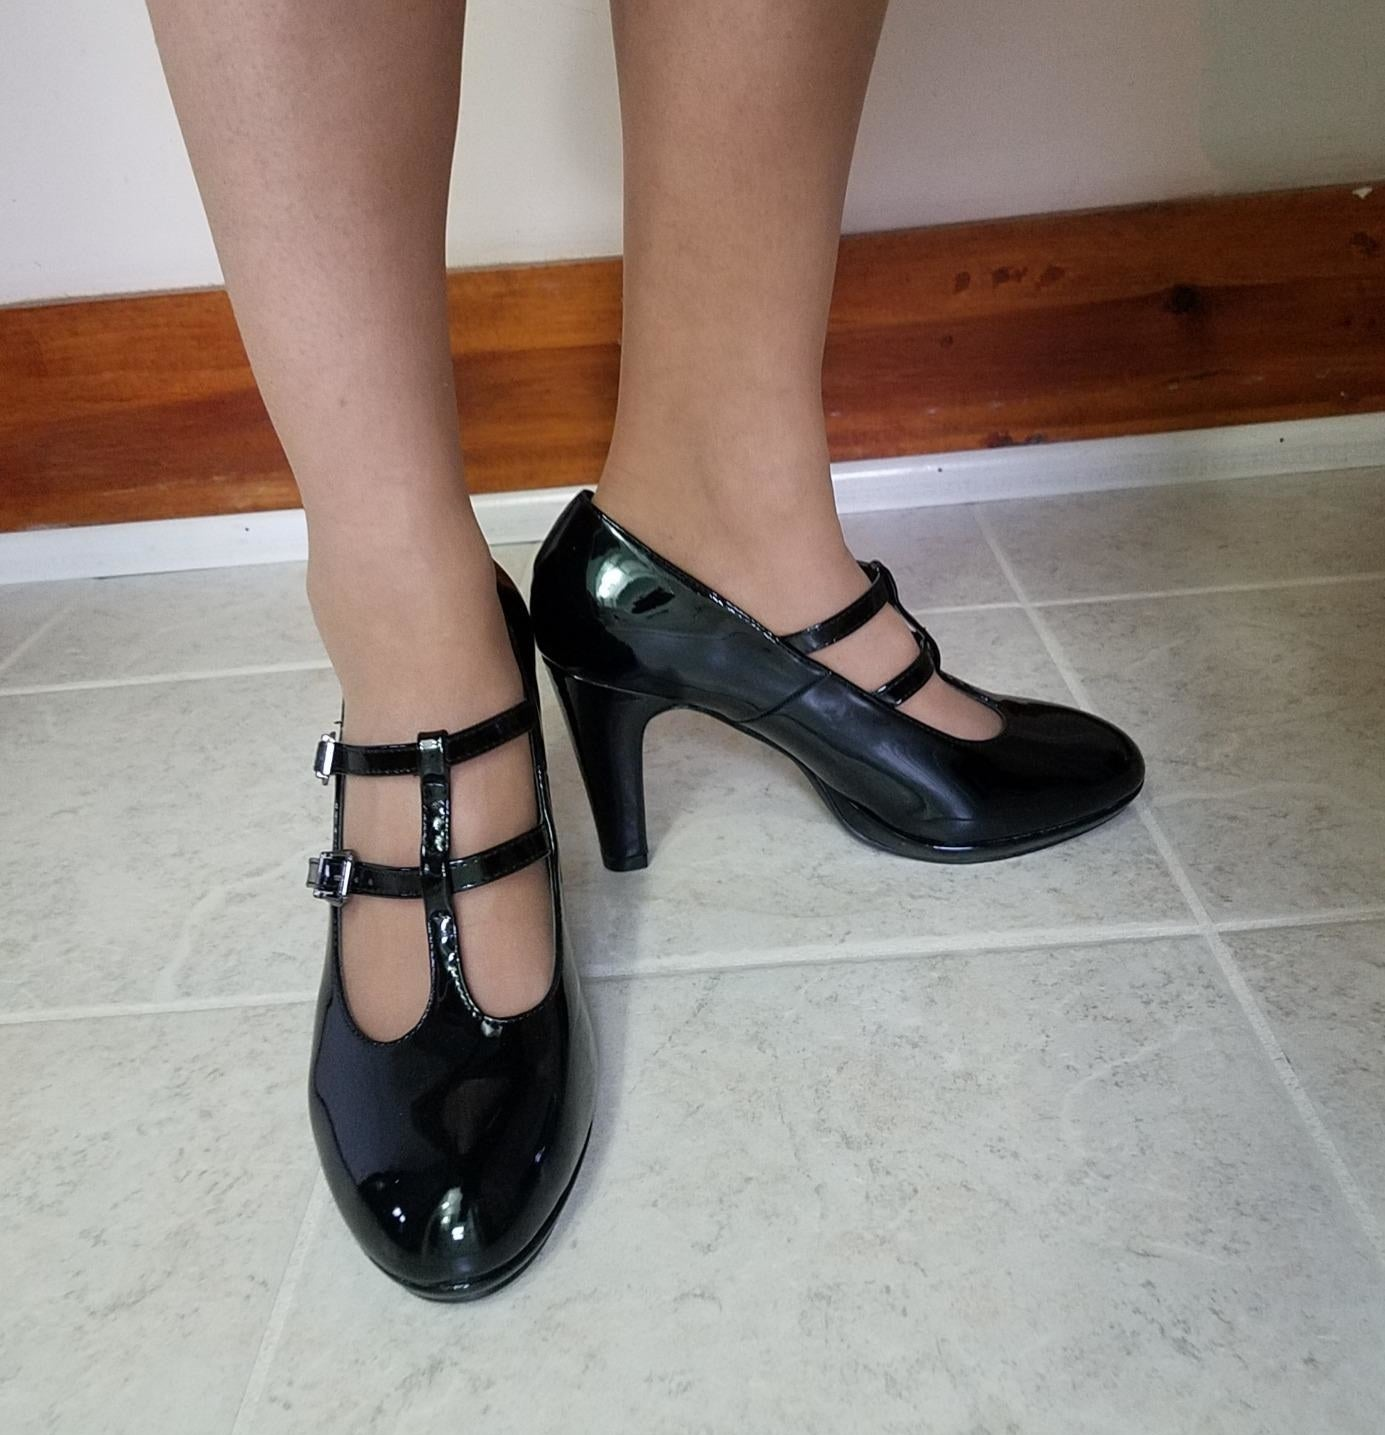 A reviewer wearing the faux patent leather high heels in black